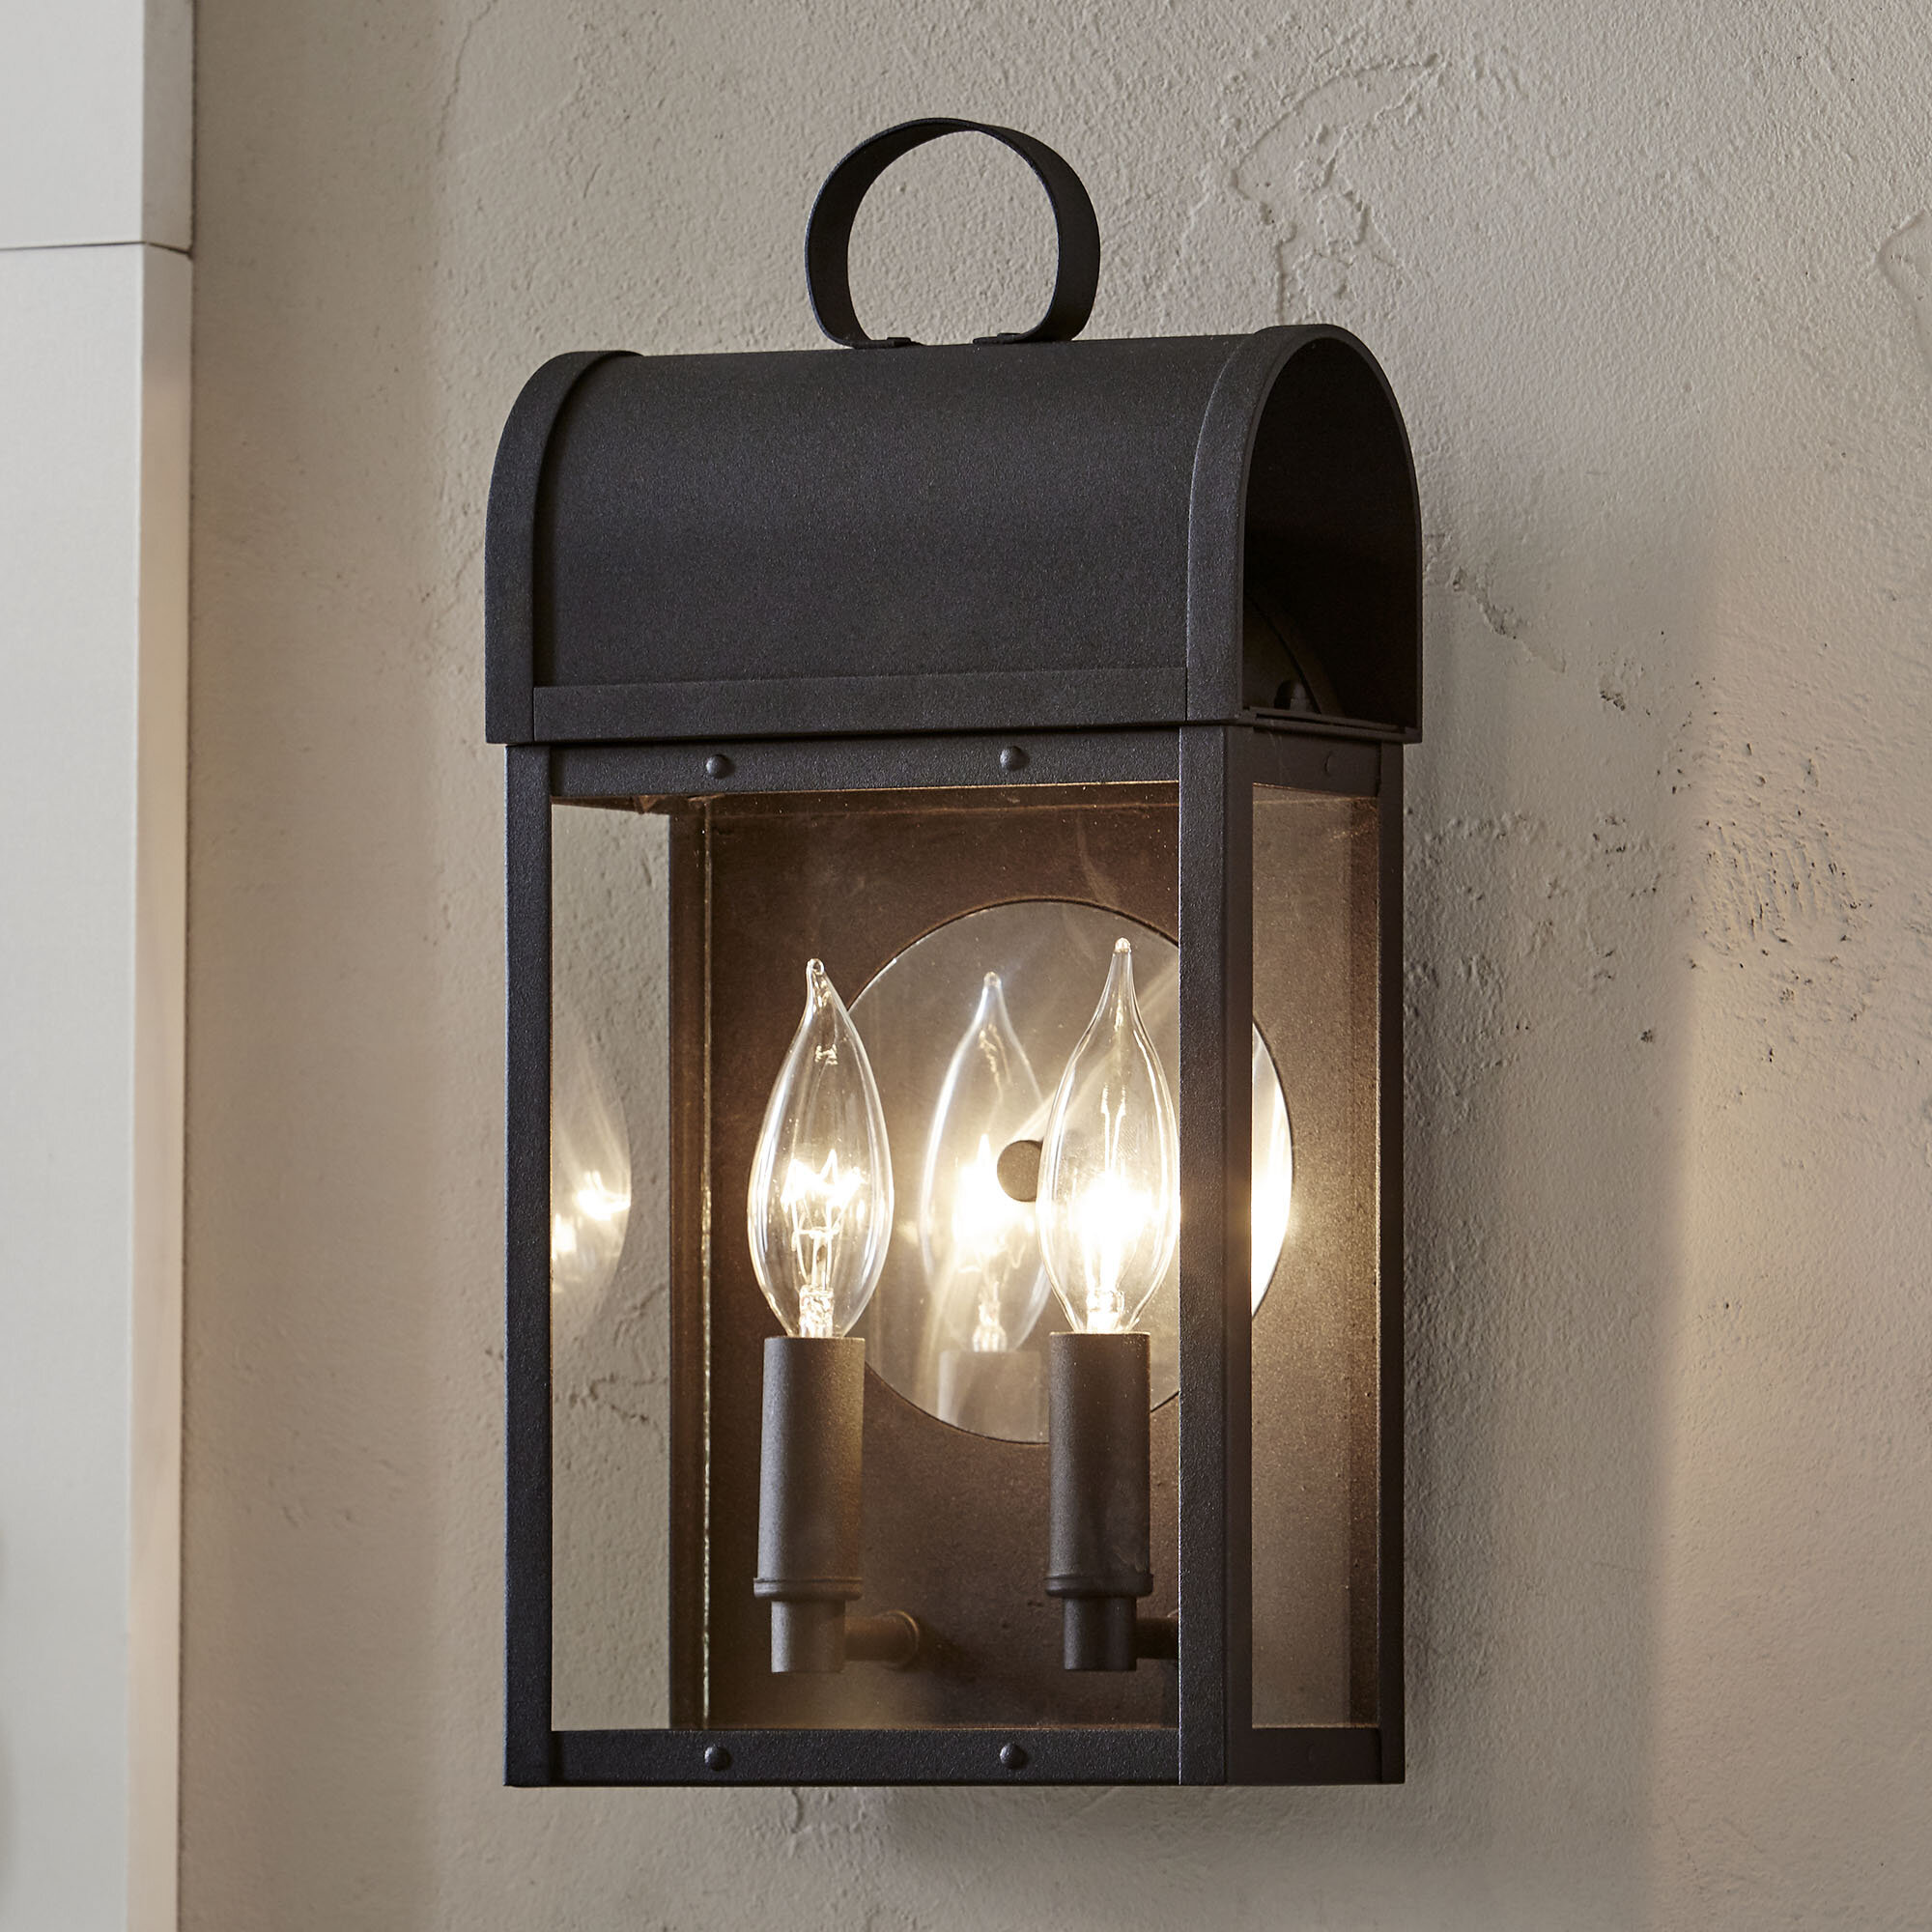 led manhattan dweled by wac sconce br ws index wall lighting